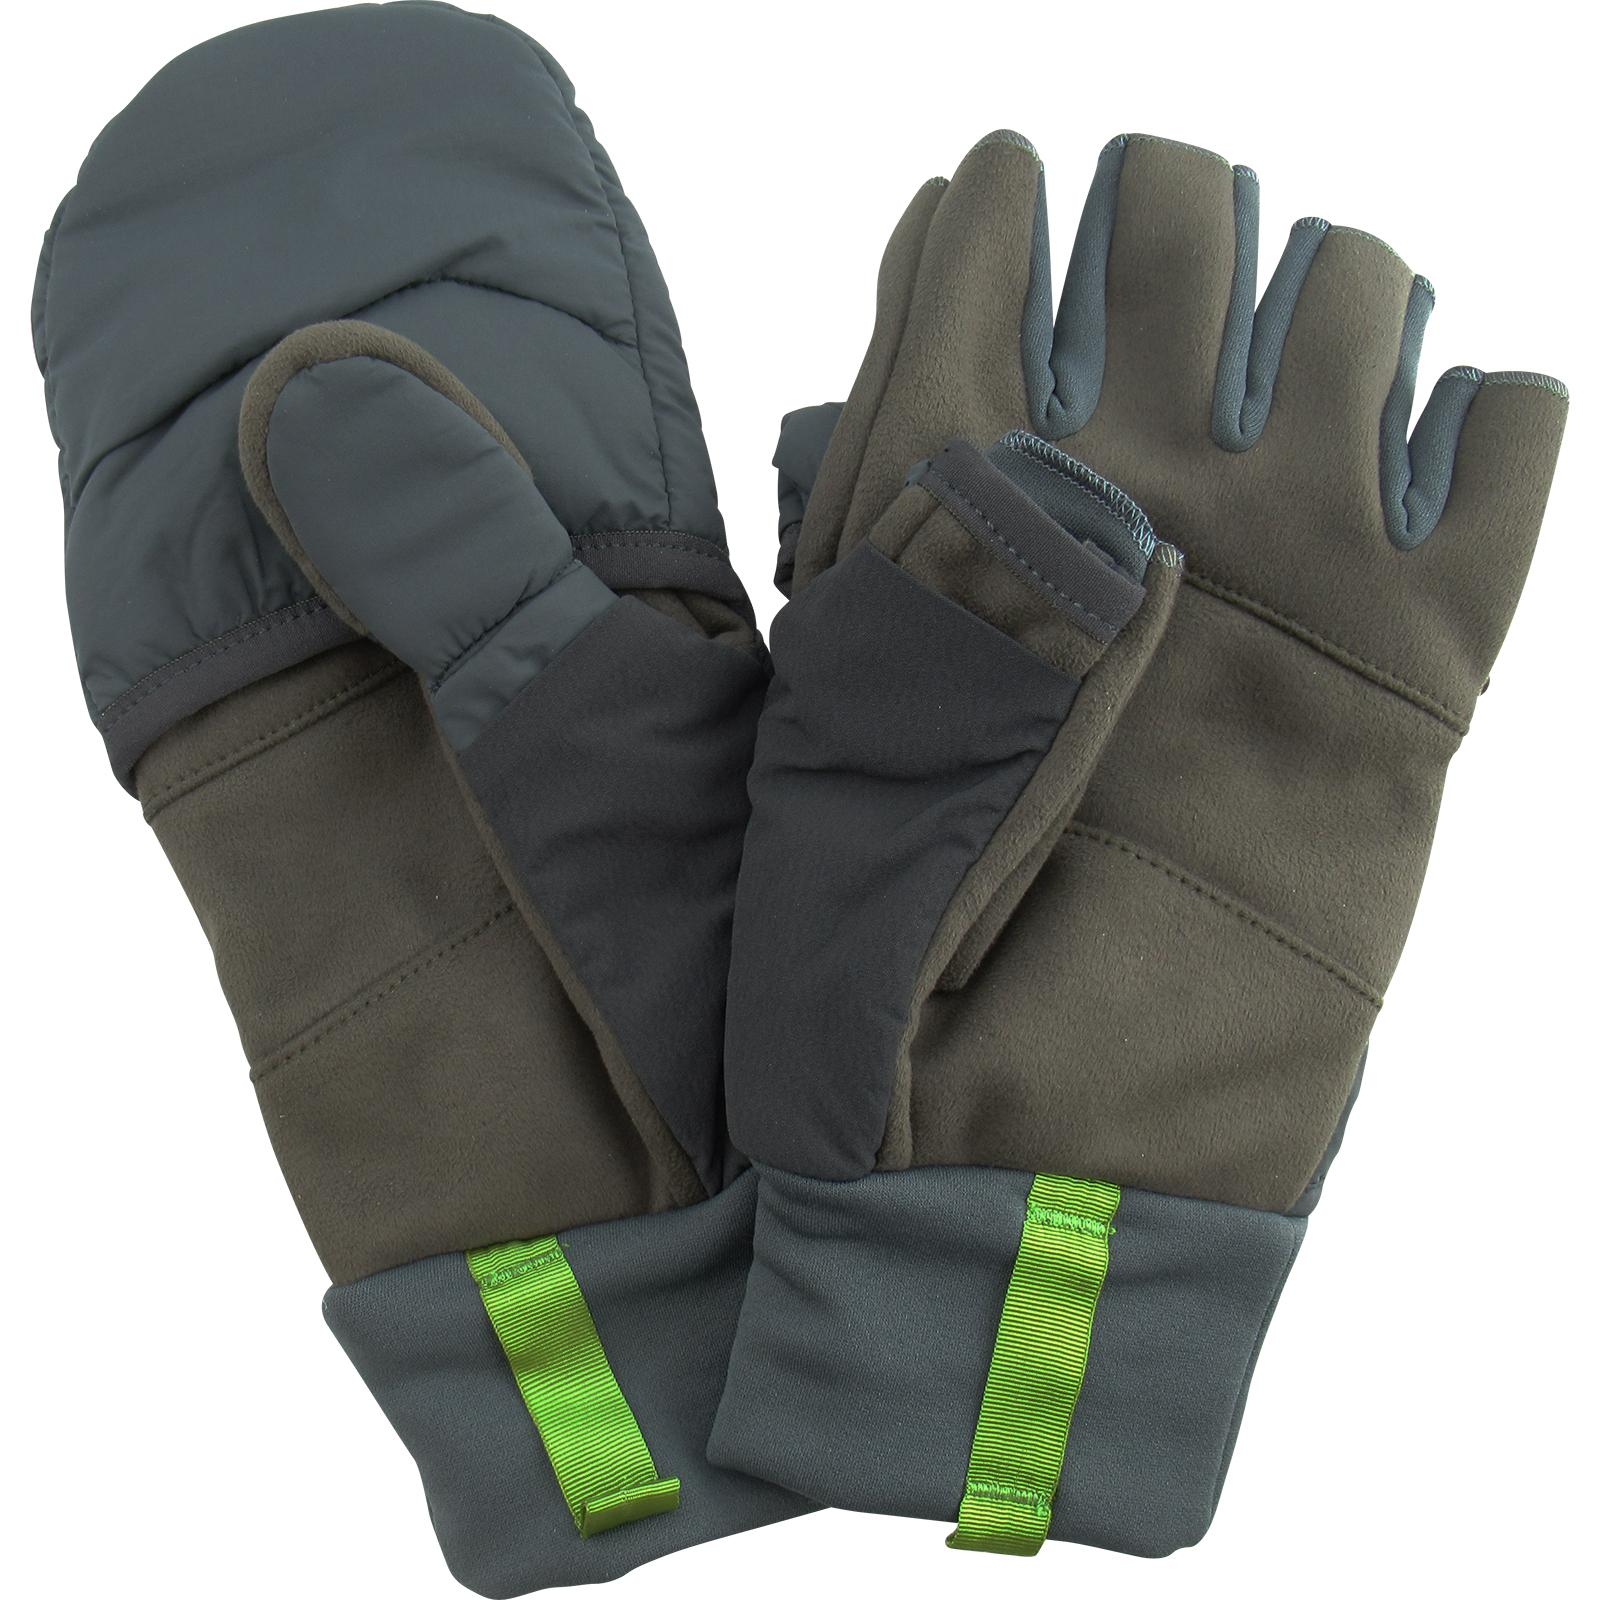 Orvis Men's PRO Insulated Convertible Mitts Palms